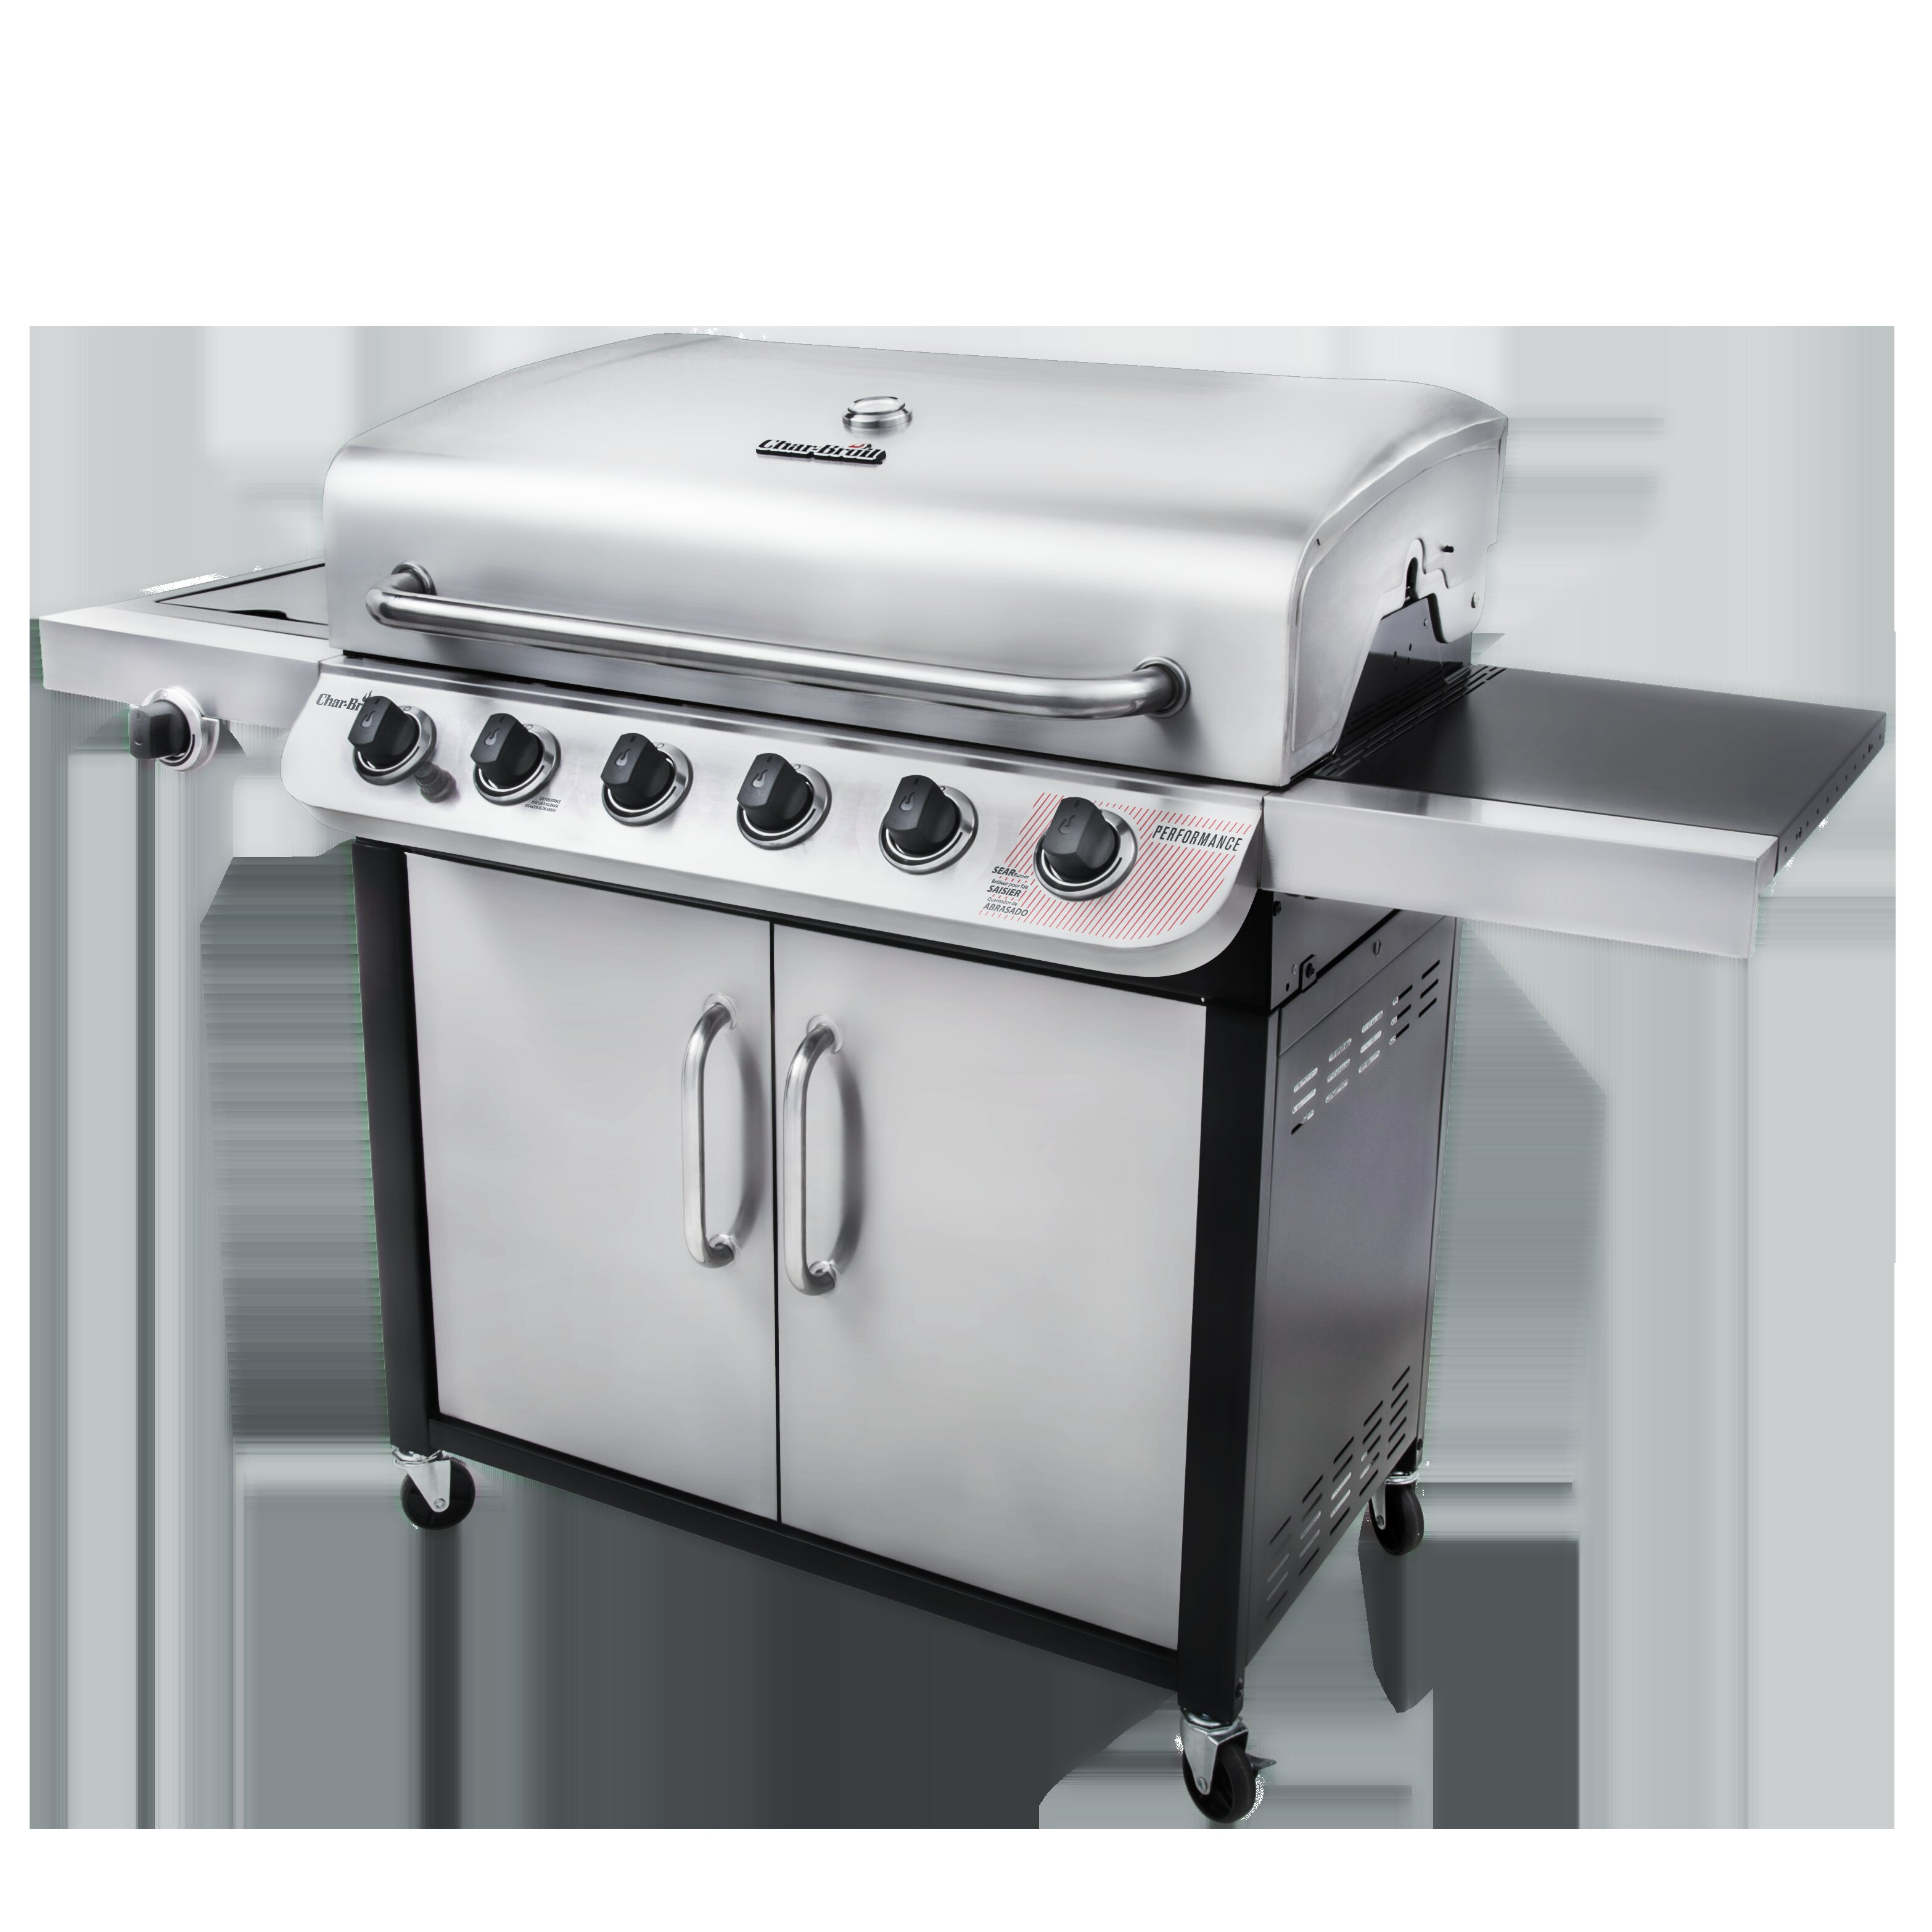 Charbroil Char Broil Performance Series 6 Burner Propane Gas Grill With Cabinet Reviews Wayfair